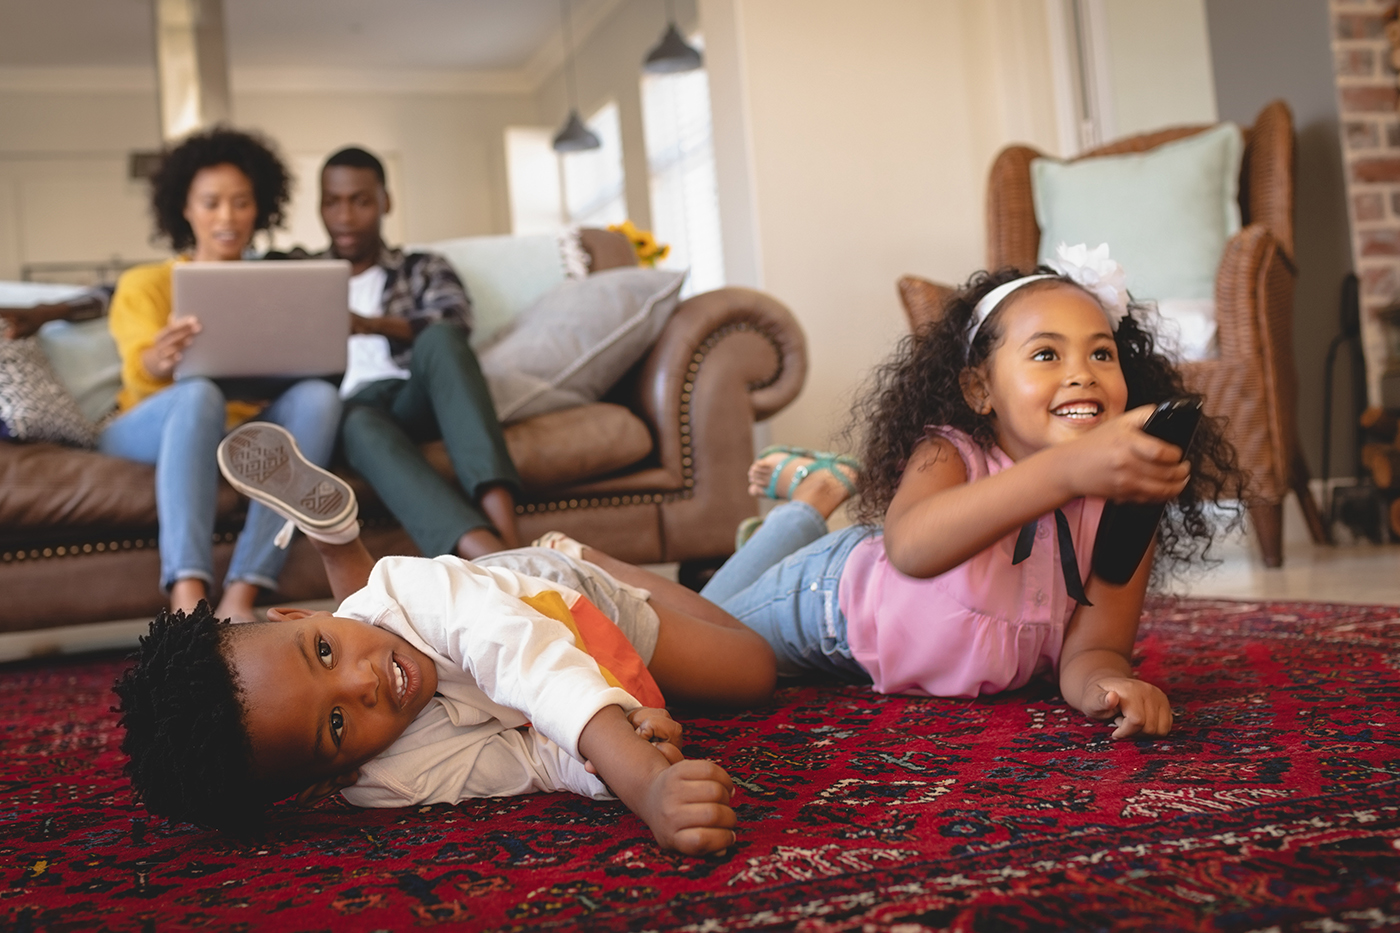 kids watching tv with parents in background